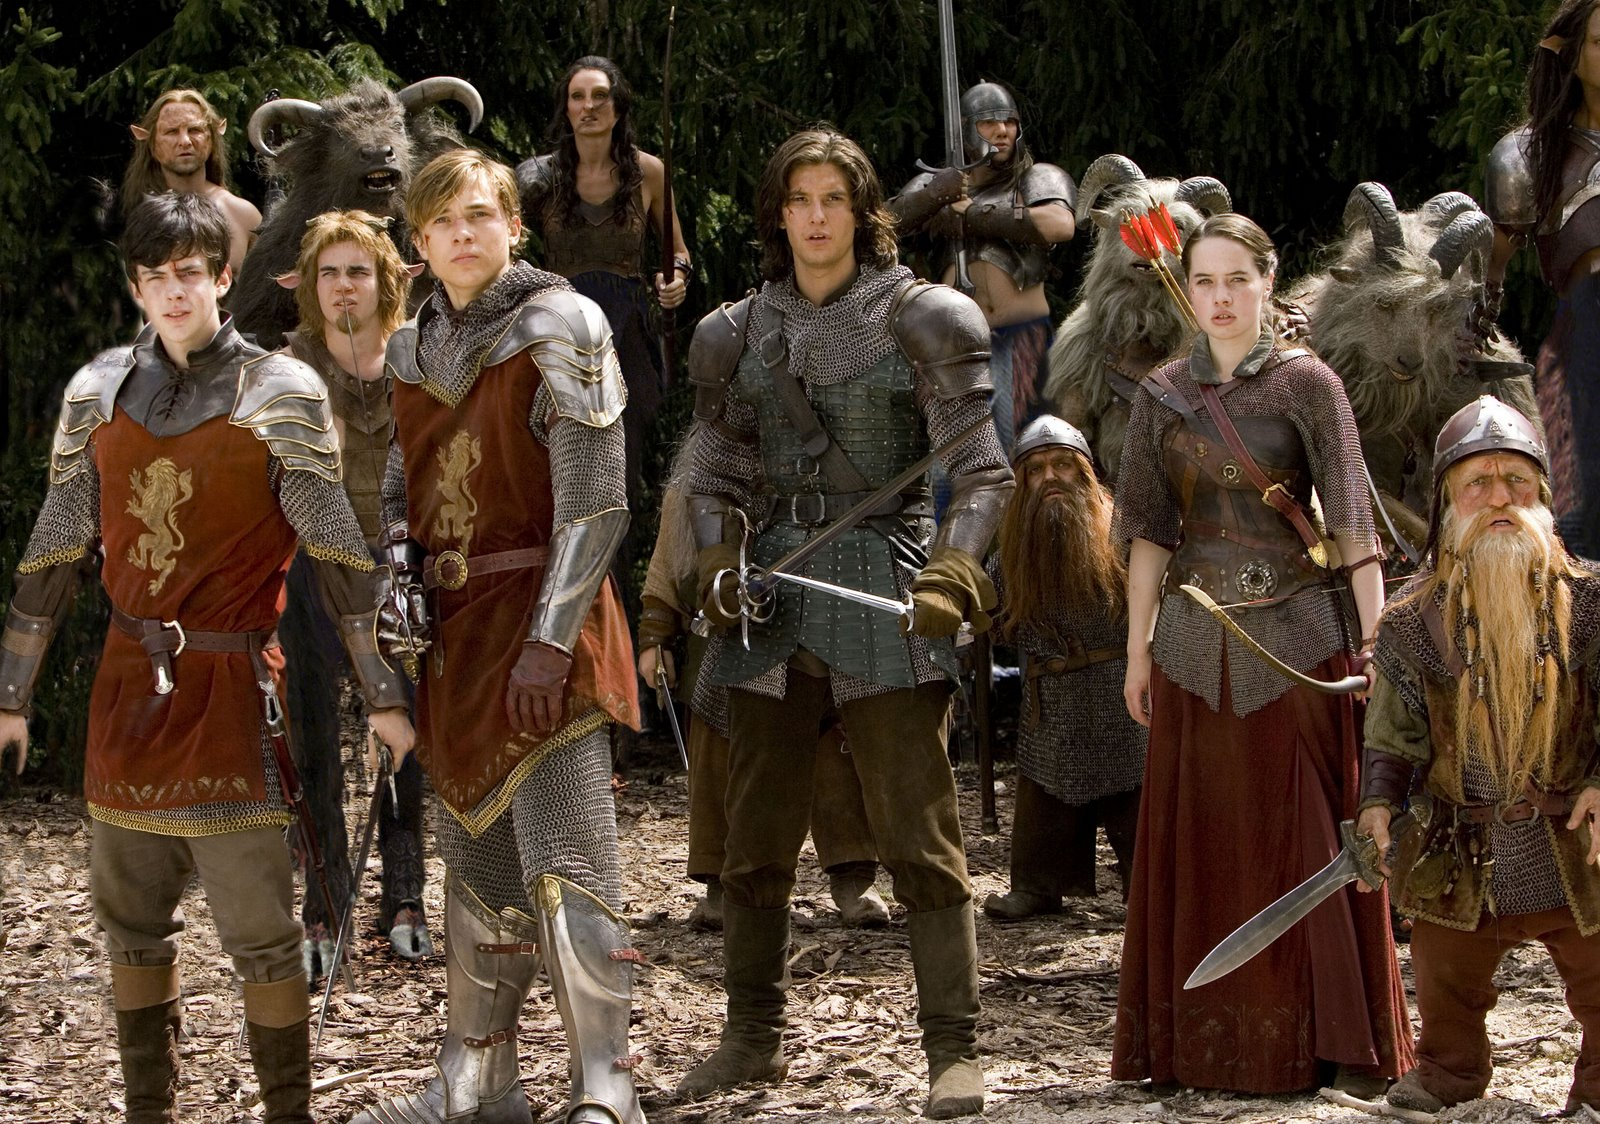 susan narnia fans new prince caspian promotional images